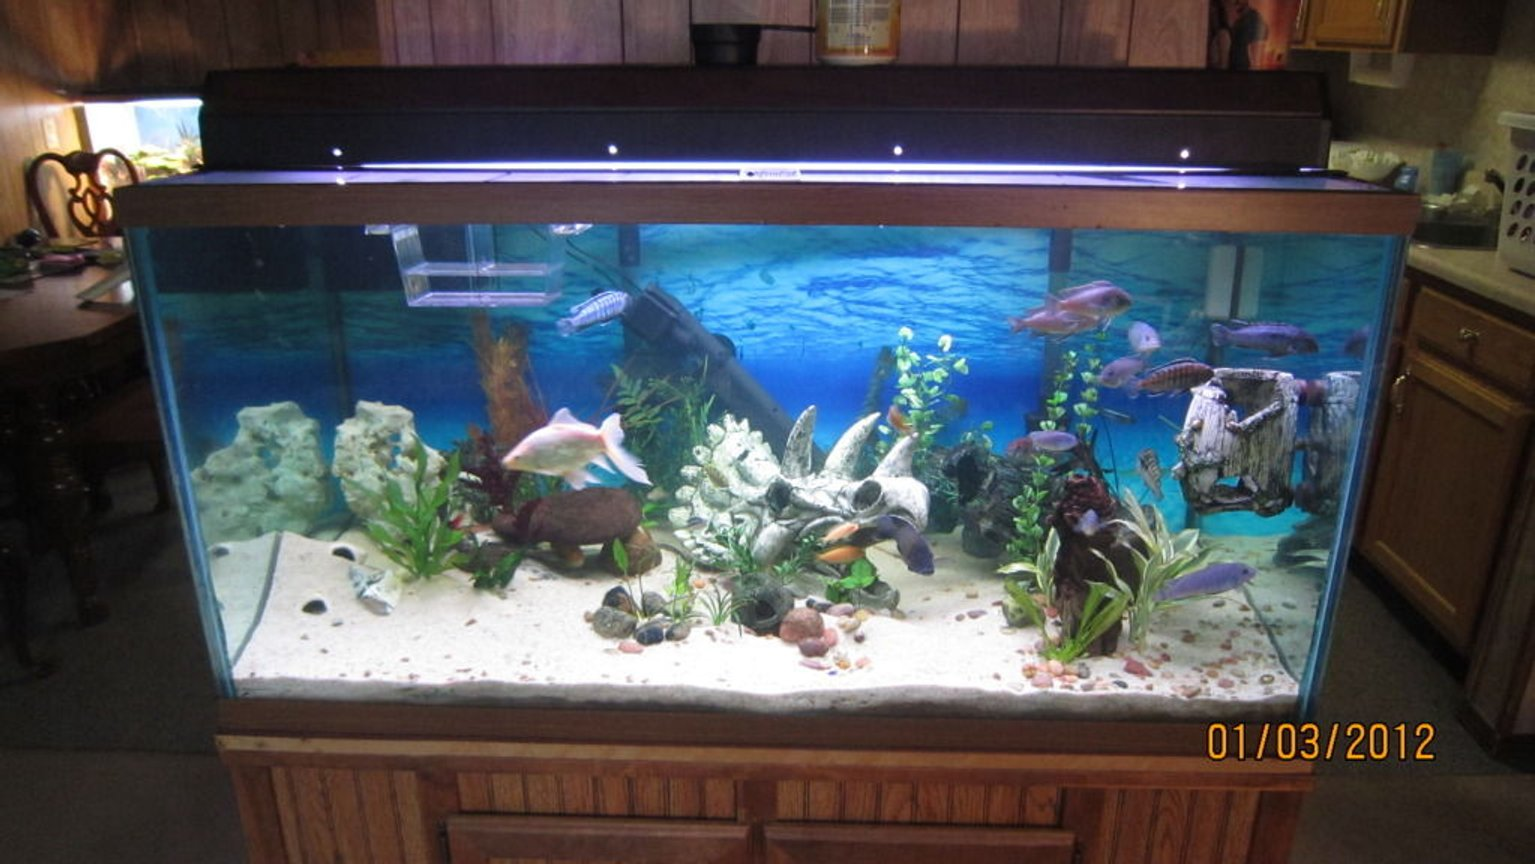 120 gallons freshwater fish tank (mostly fish and non-living decorations) - 120g FW Cichlid tank.